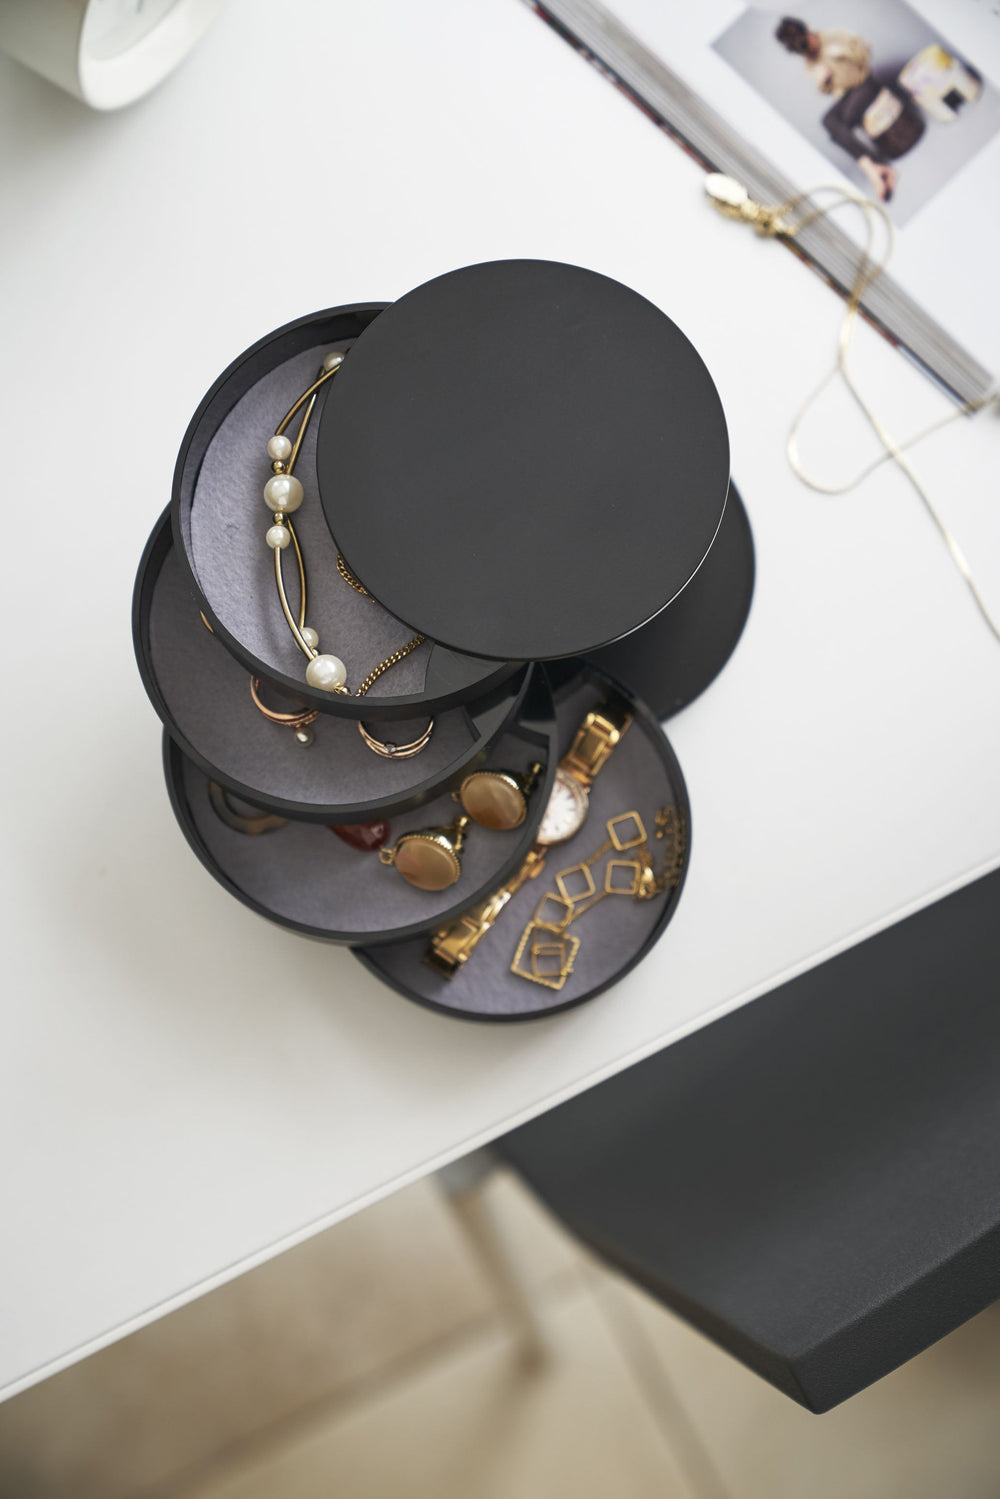 Top, more detailed view, of Yamazaki's 4-Tiered Accessory Tray on a vanity with various jewelry pieces and accessories inside the various stacked round compartments.